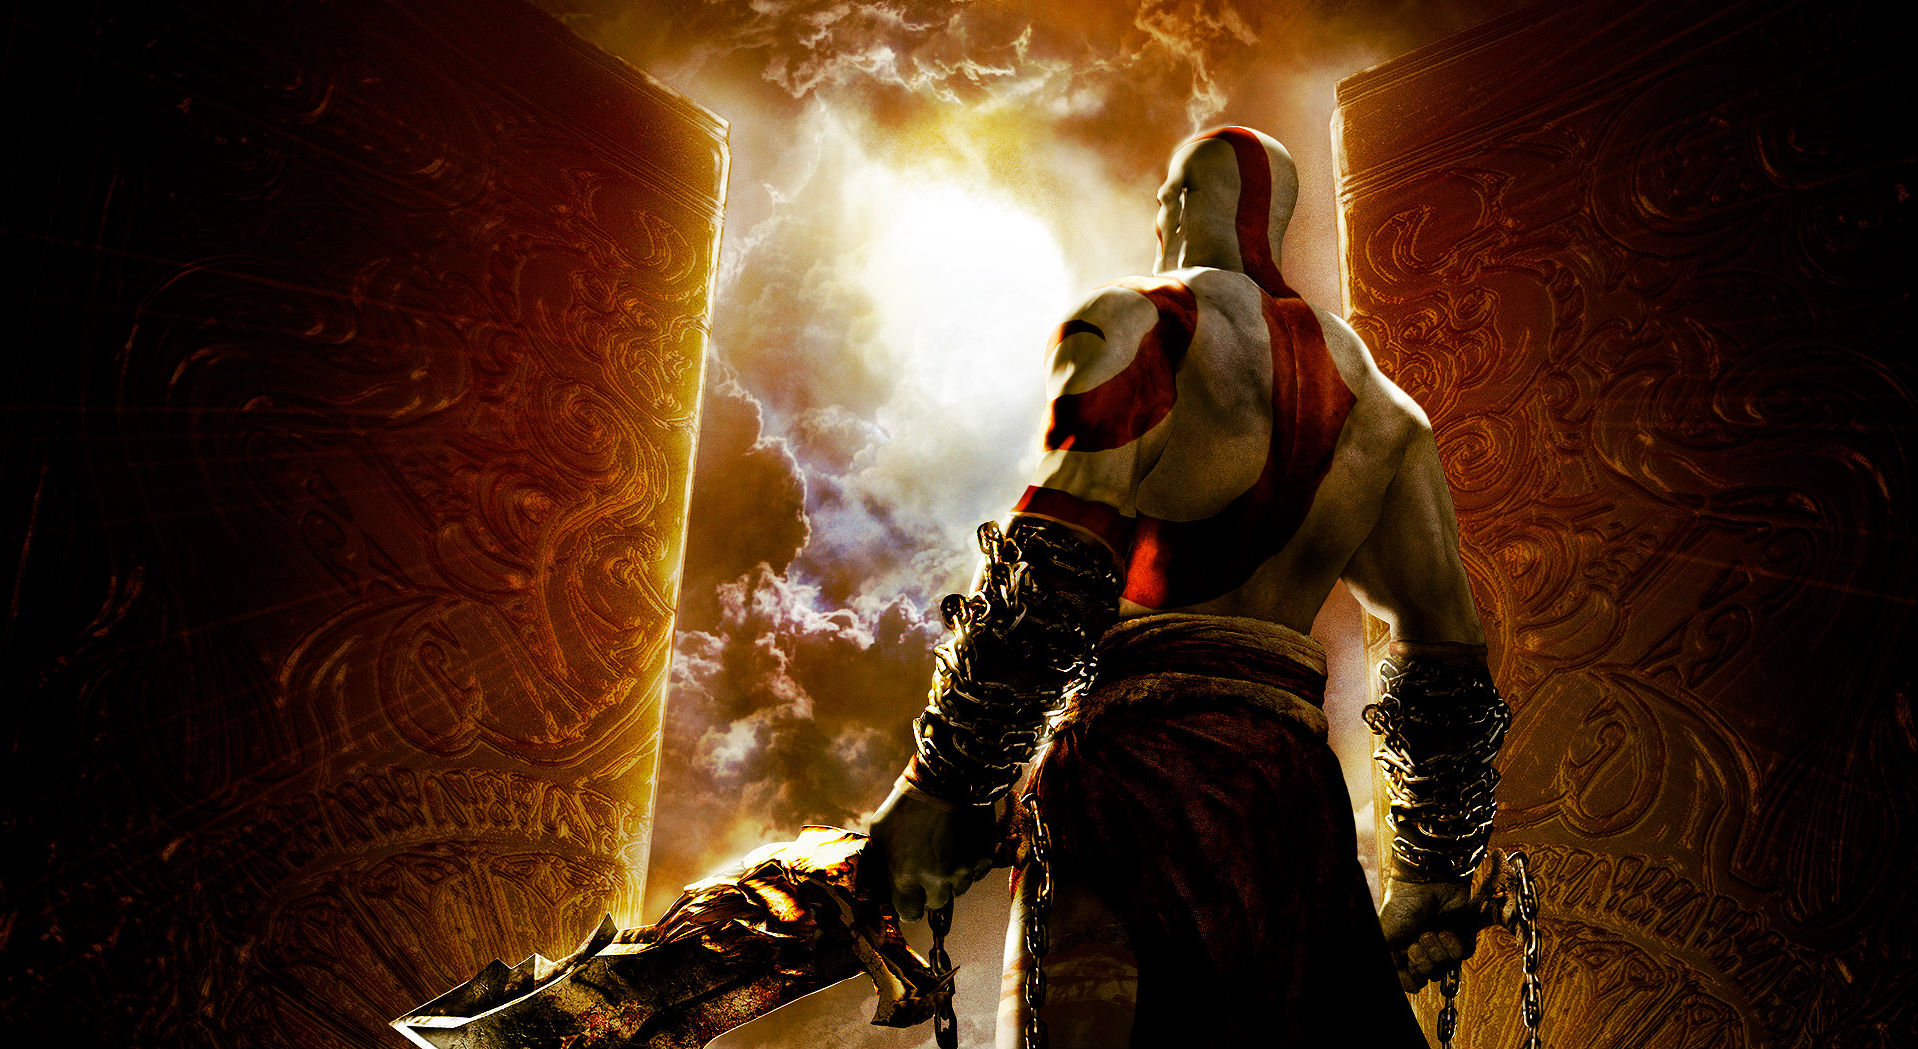 Video Game - God Of War III Wallpaper